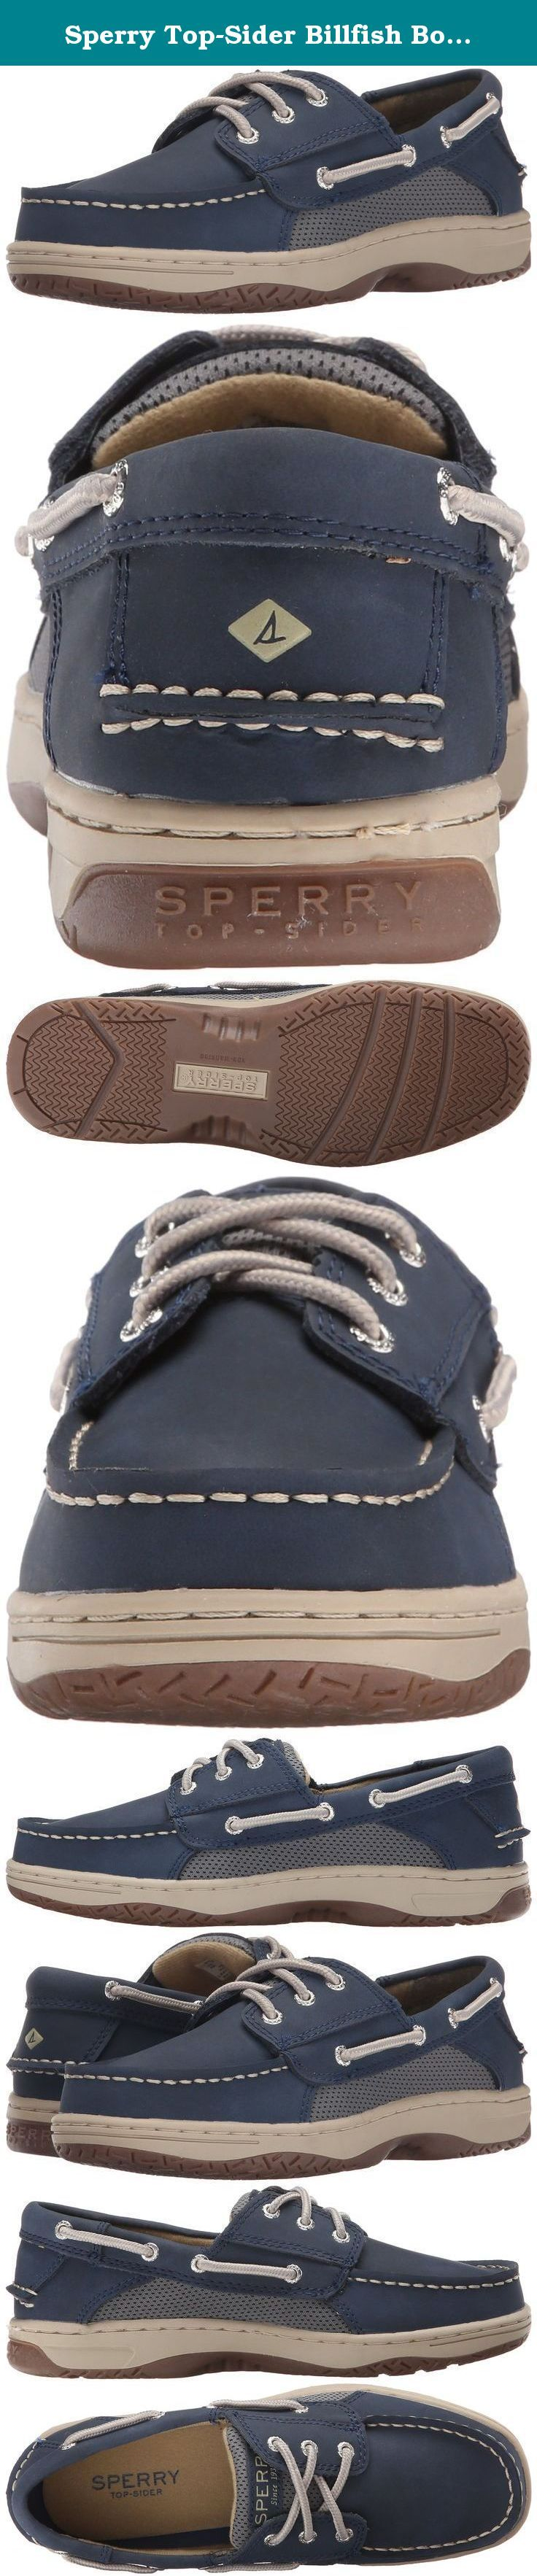 Sperry Top-Sider Billfish Boat Shoe (Little Kid/Big Kid). From the park to the pier, this classic tan Billfish shoe by Sperry Top Sider offers your little man comfort and style. A flexible rubber outsole provides traction.